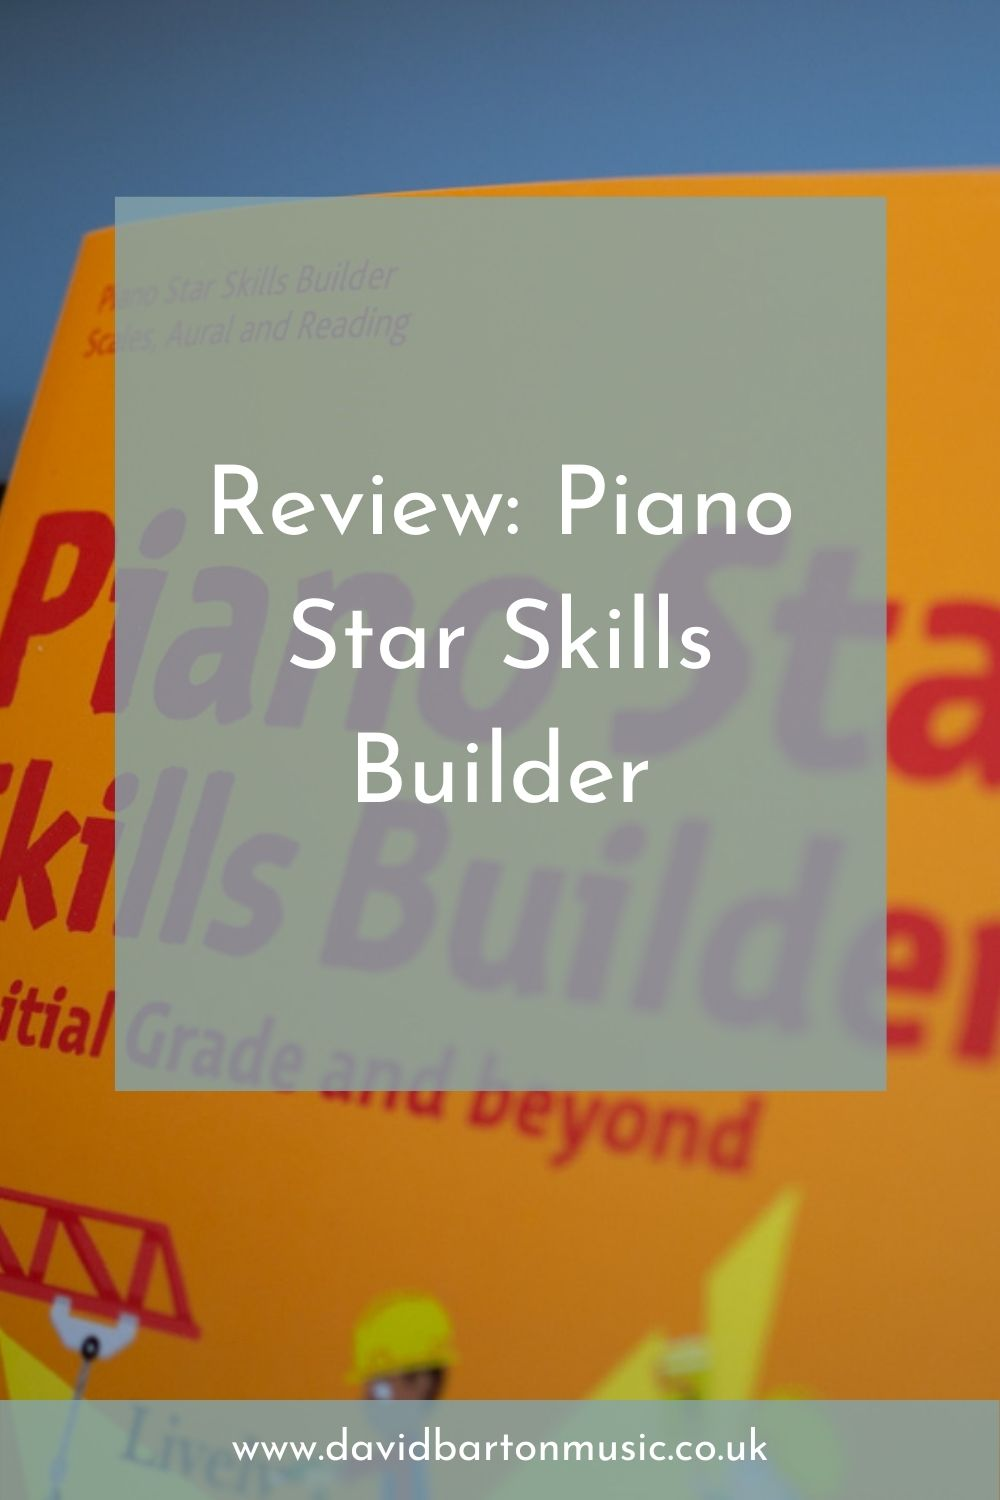 Review: Piano Star Skills Builder - Pinterest Graphic